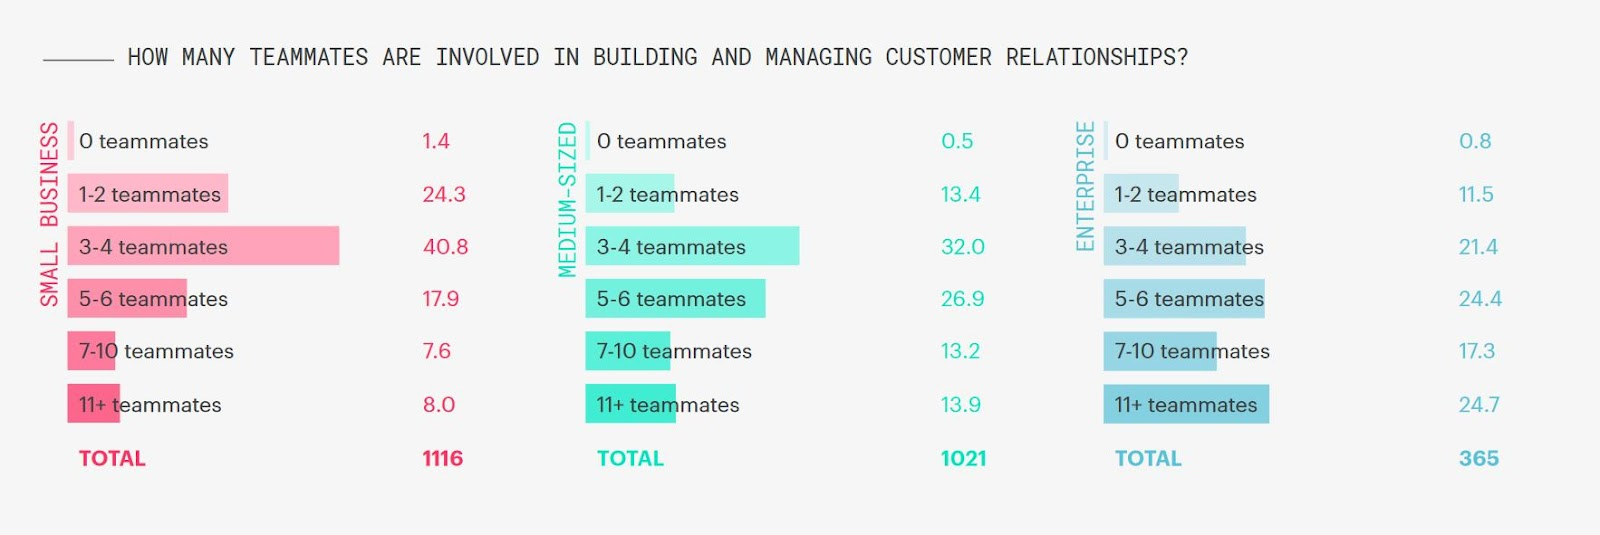 crm benchmark report findings show that multiple teammates collaborate to manage customer relationships